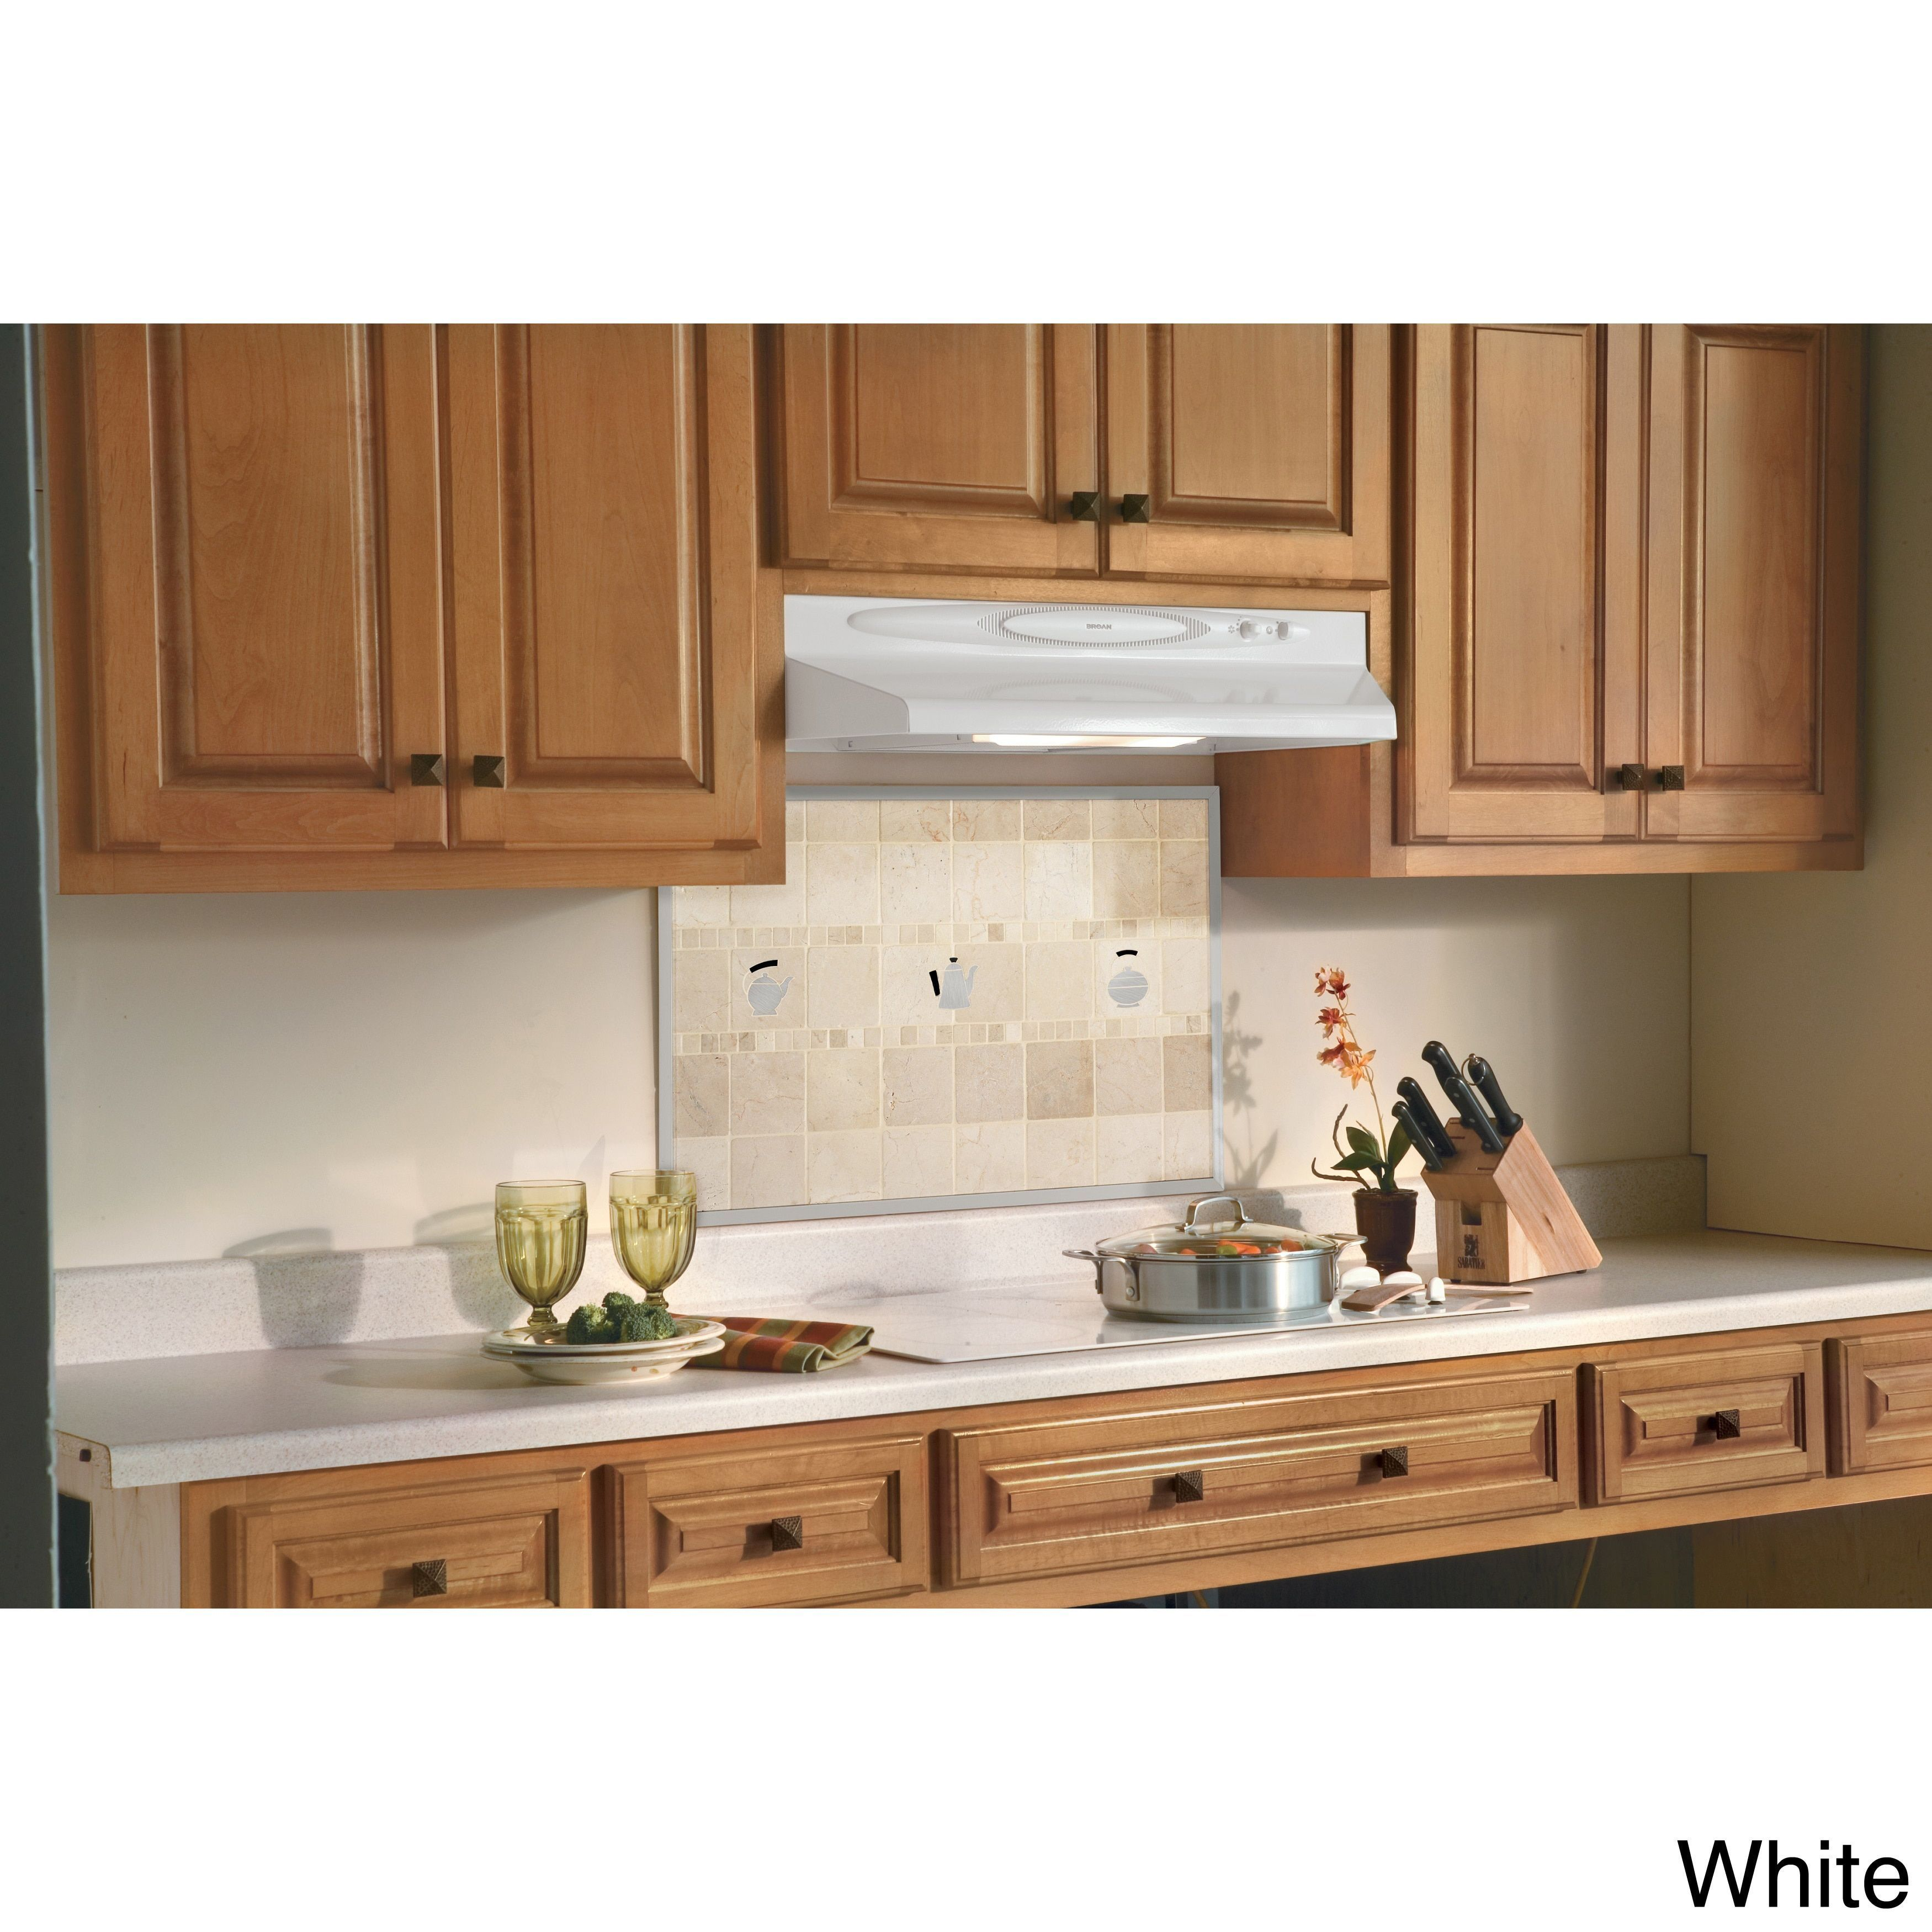 Online Shopping Bedding Furniture Electronics Jewelry Clothing More Under Cabinet Cabinet Styles Stainless Range Hood